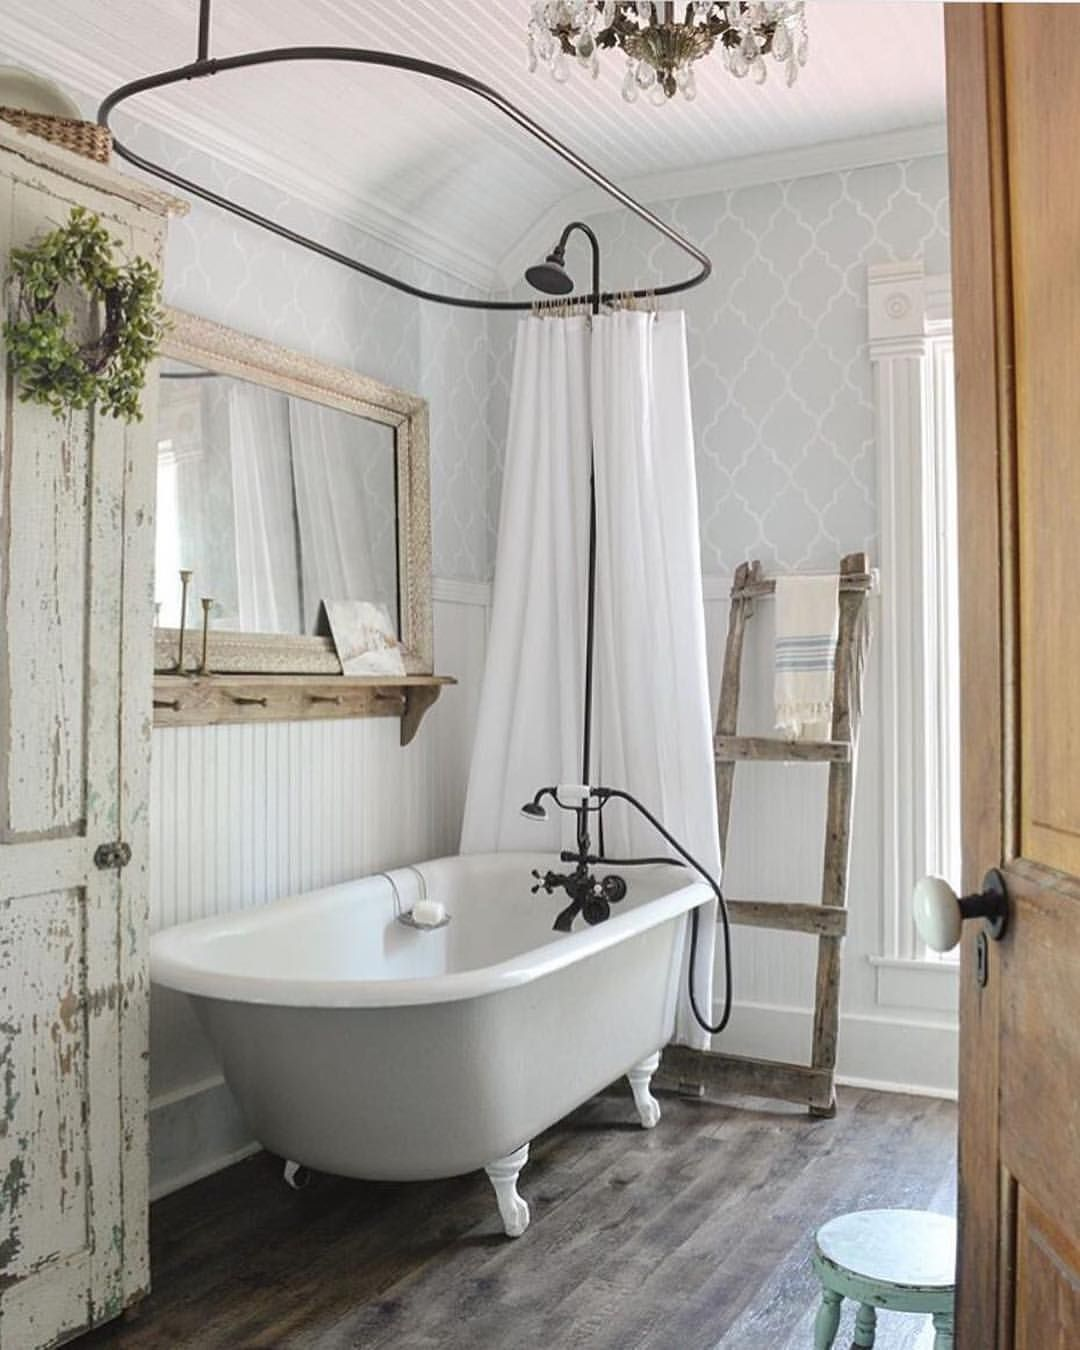 Wouldn T You Love To Have A Lazy Sunday Afternoon With A Bubble Bath In This Clawfoot Tub Clawfoot Tub Bathroom Freestanding Bathtub Shower Clawfoot Tub Shower